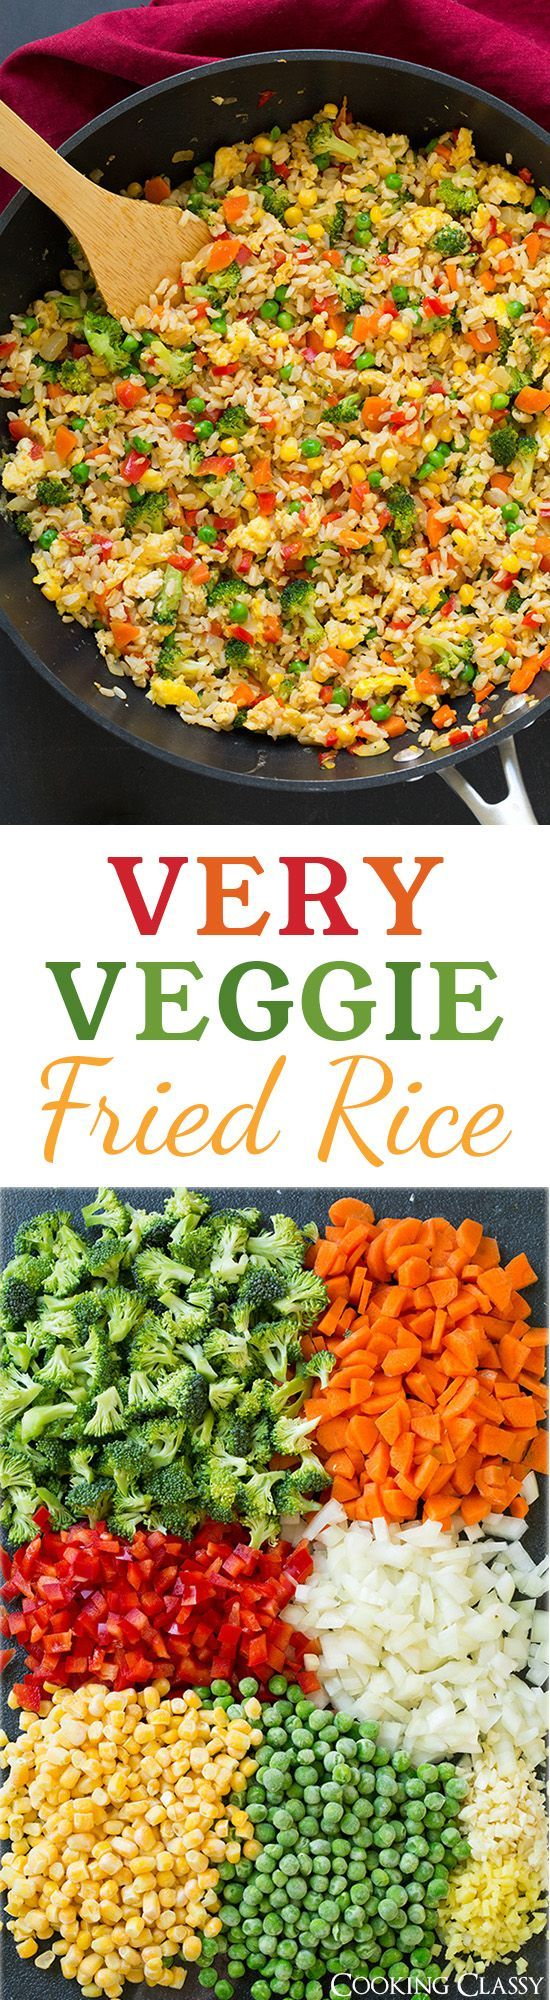 Very Veggie Fried Rice - made healthier with brown rice, eggs, broccoli, red bell pepper, carrots, peas and corn #healthy #vegetarian #easydinners